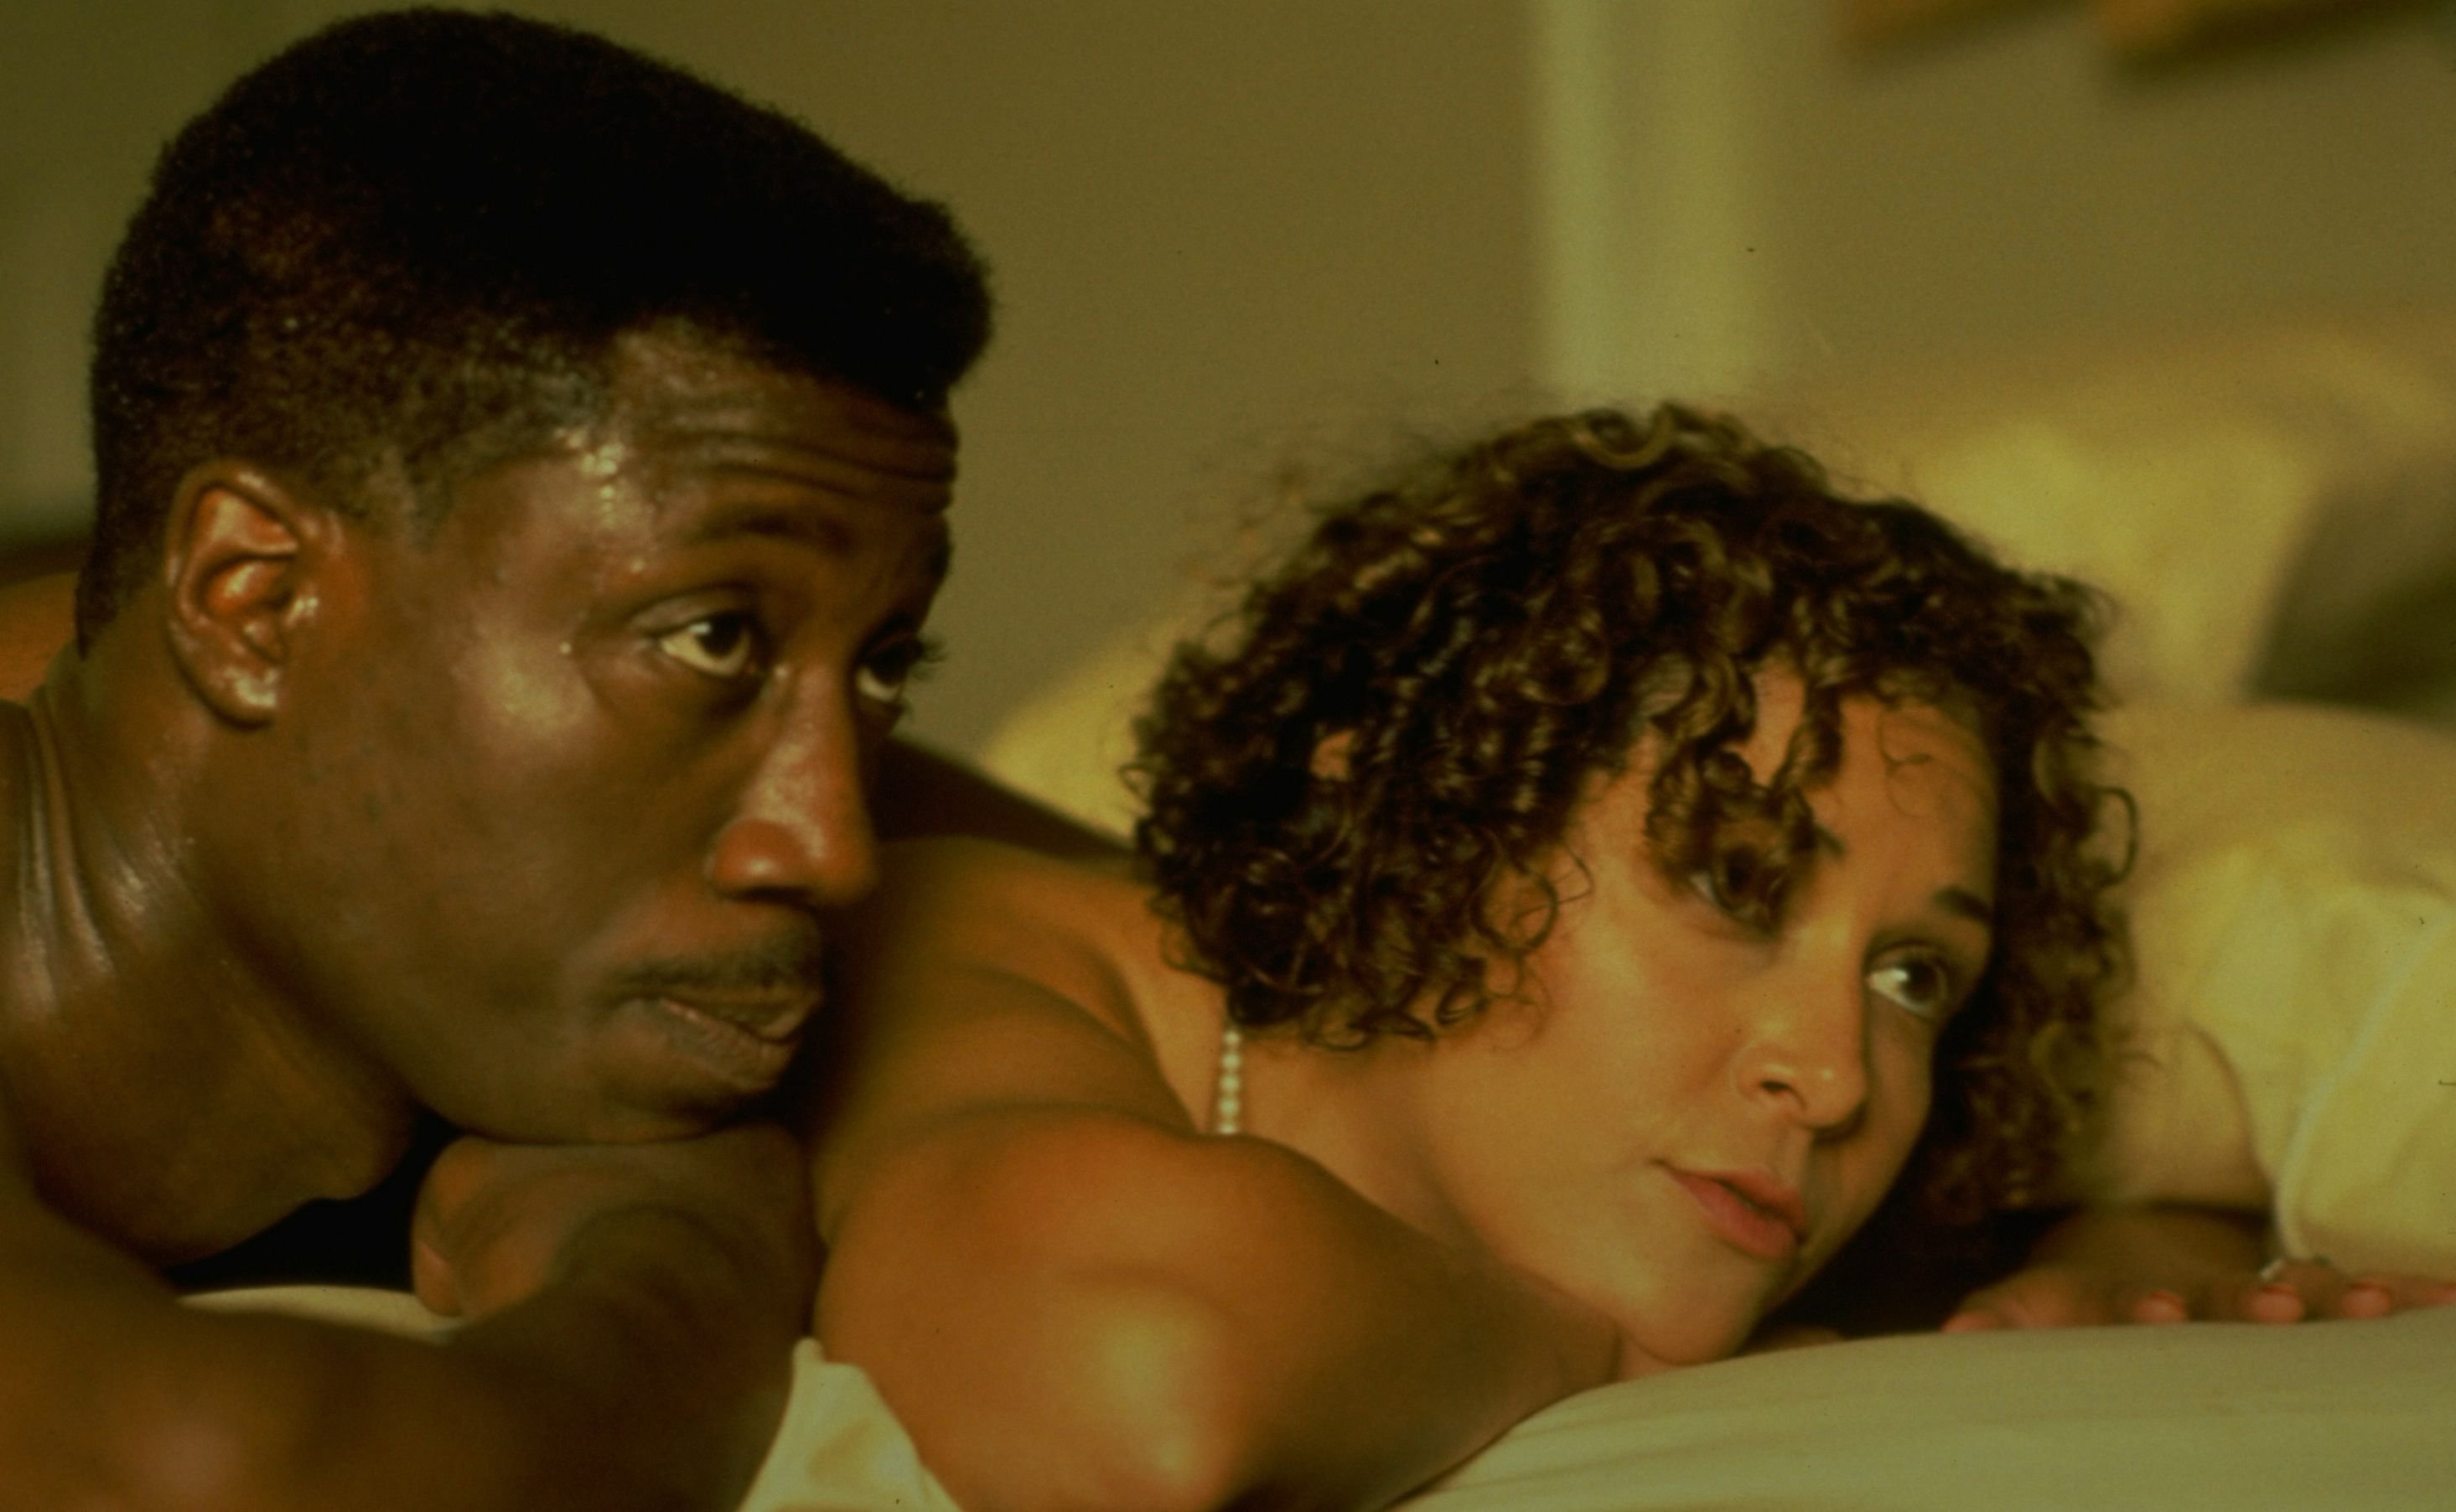 spike lees movie jungle fever essay A movie titled jungle fever directed by spike lee was released in 1991 which starring wesley snipes and annabella sciorra there is also a song titled jungle fever performed by belgian group the chakachas which was released in 1972 the song was banned by the bbc as a result of the.